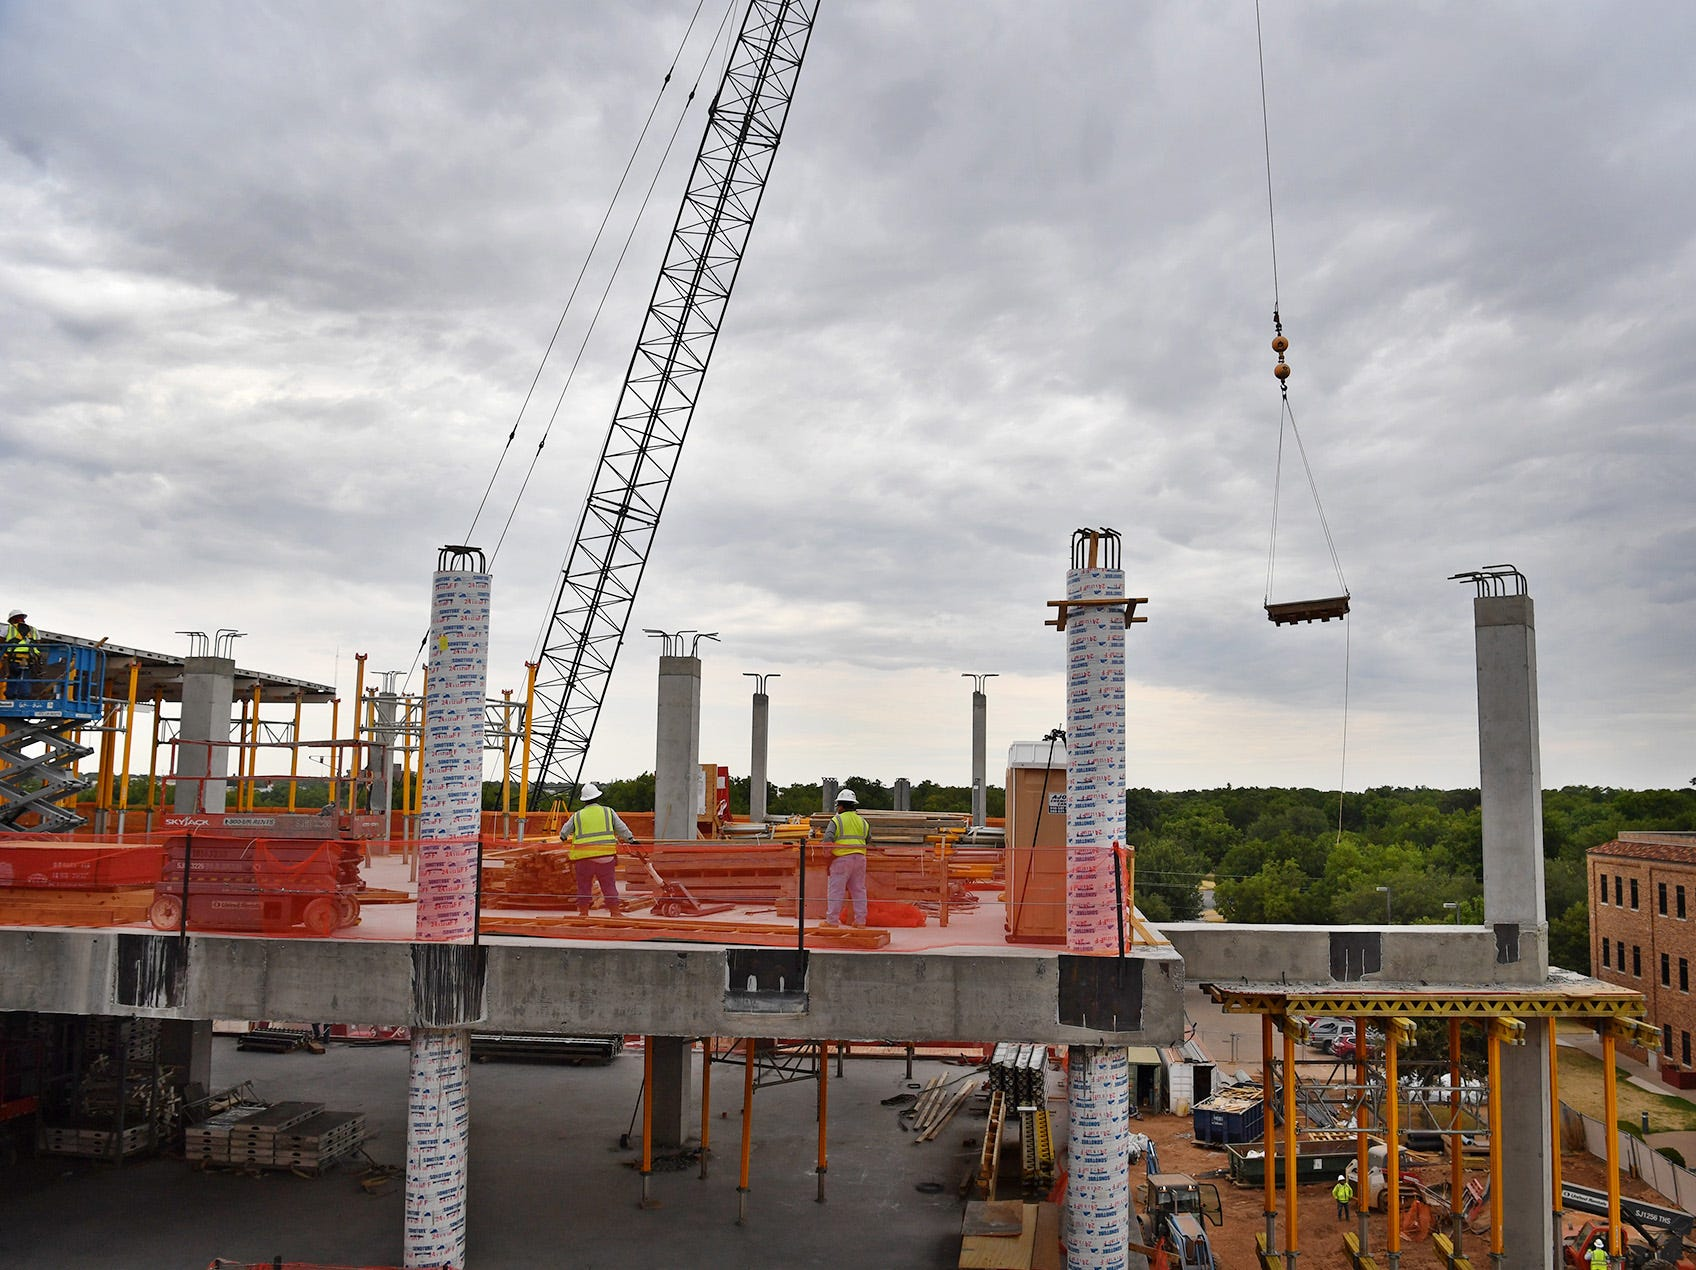 Construction of the Midwestern State University Health Sciences and Human Services building is topping out as workers install forms for the roof of the four-story building.